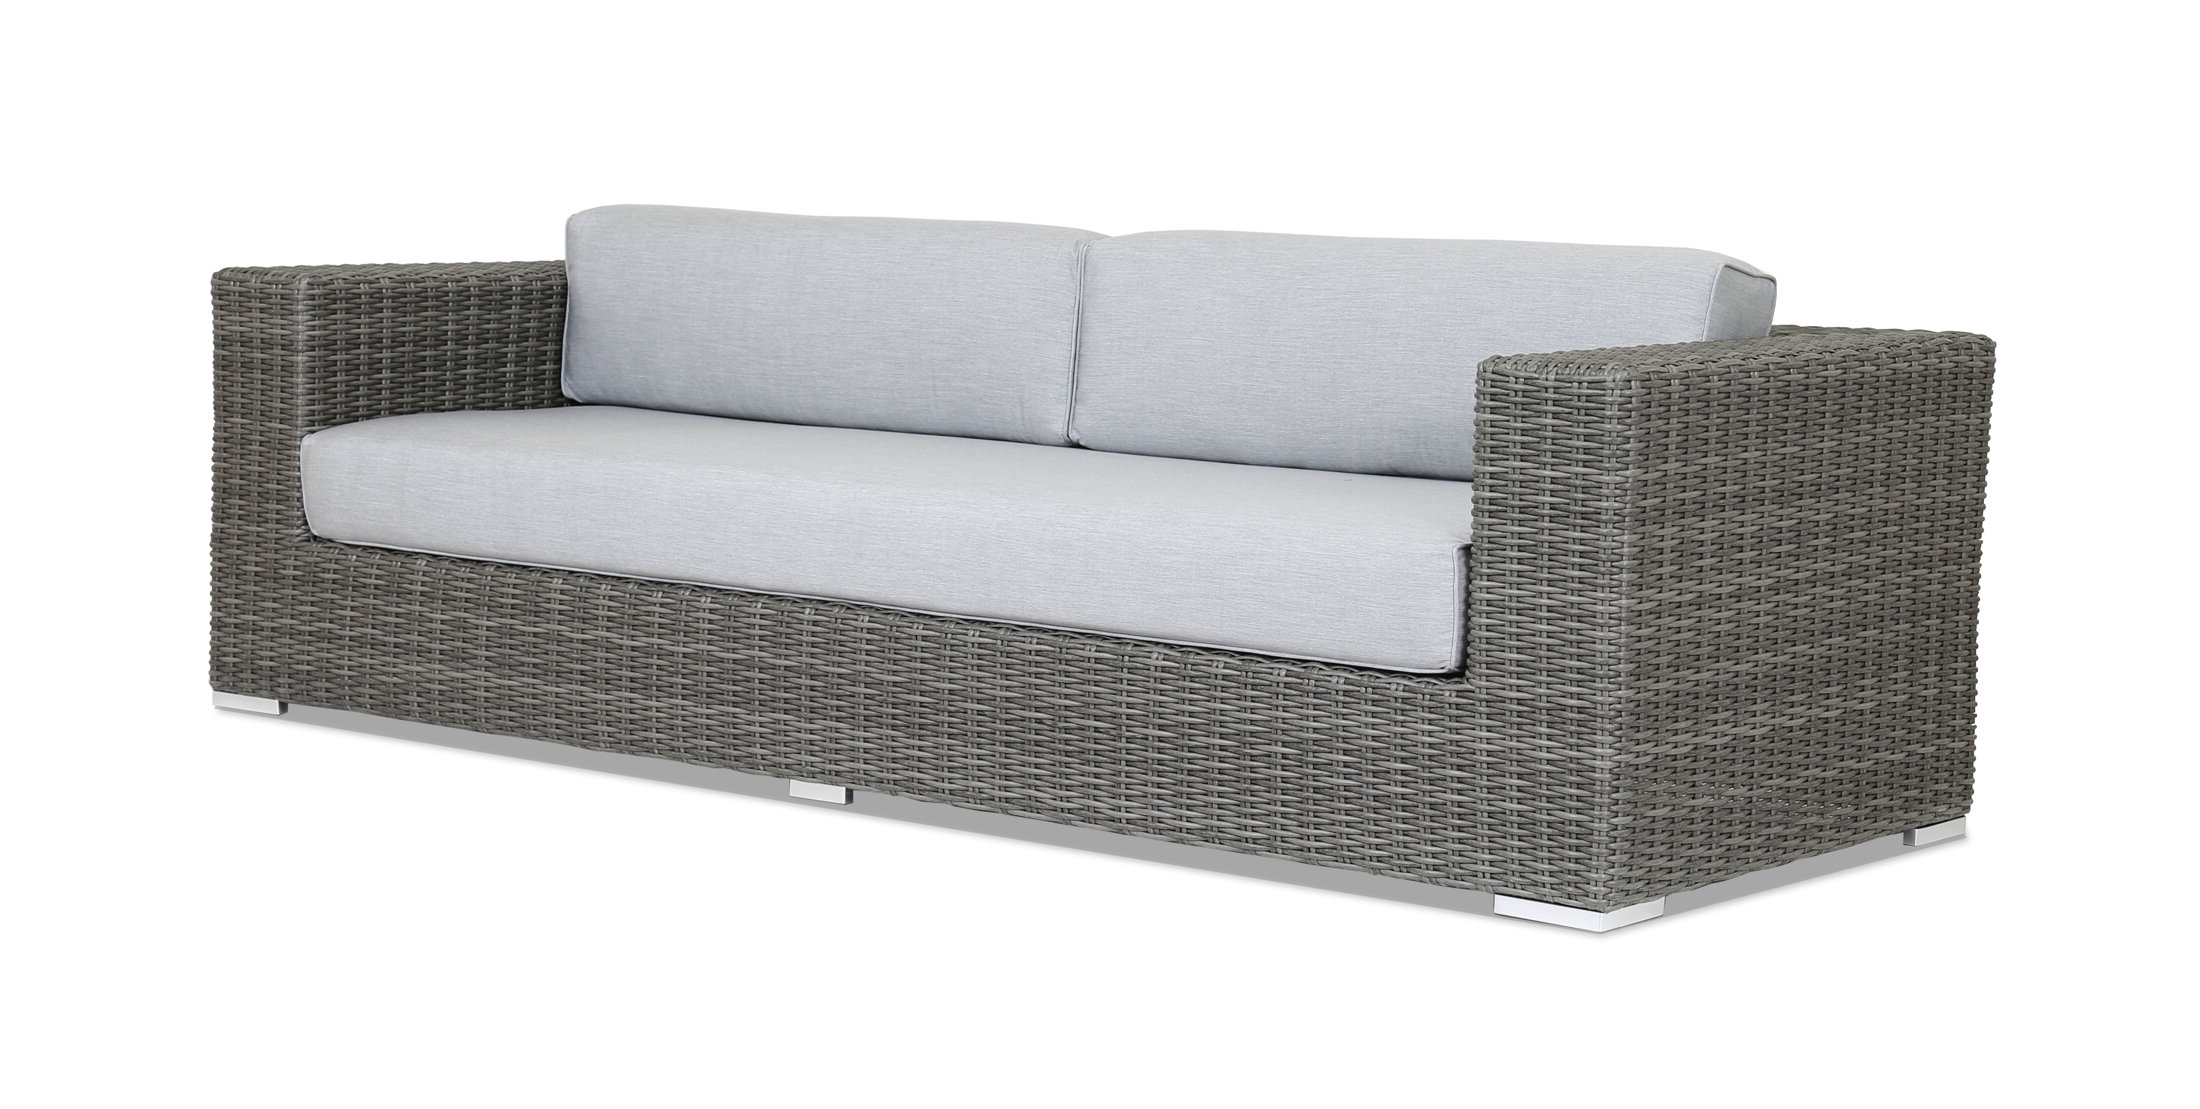 Astrid Wicker Patio Sofas With Cushions Throughout Best And Newest Emerald Ii Patio Sofa With Sunbrella Cushion (View 14 of 25)